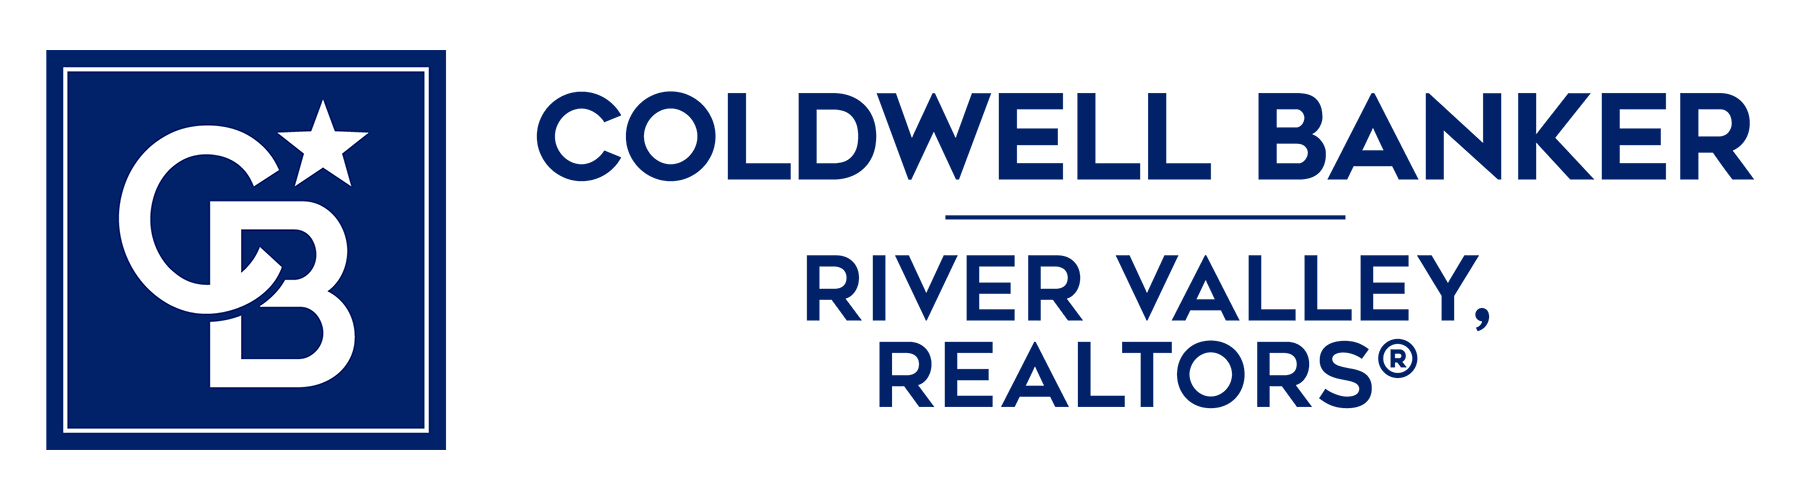 Coldwell Banker River Valley Realtors Logo